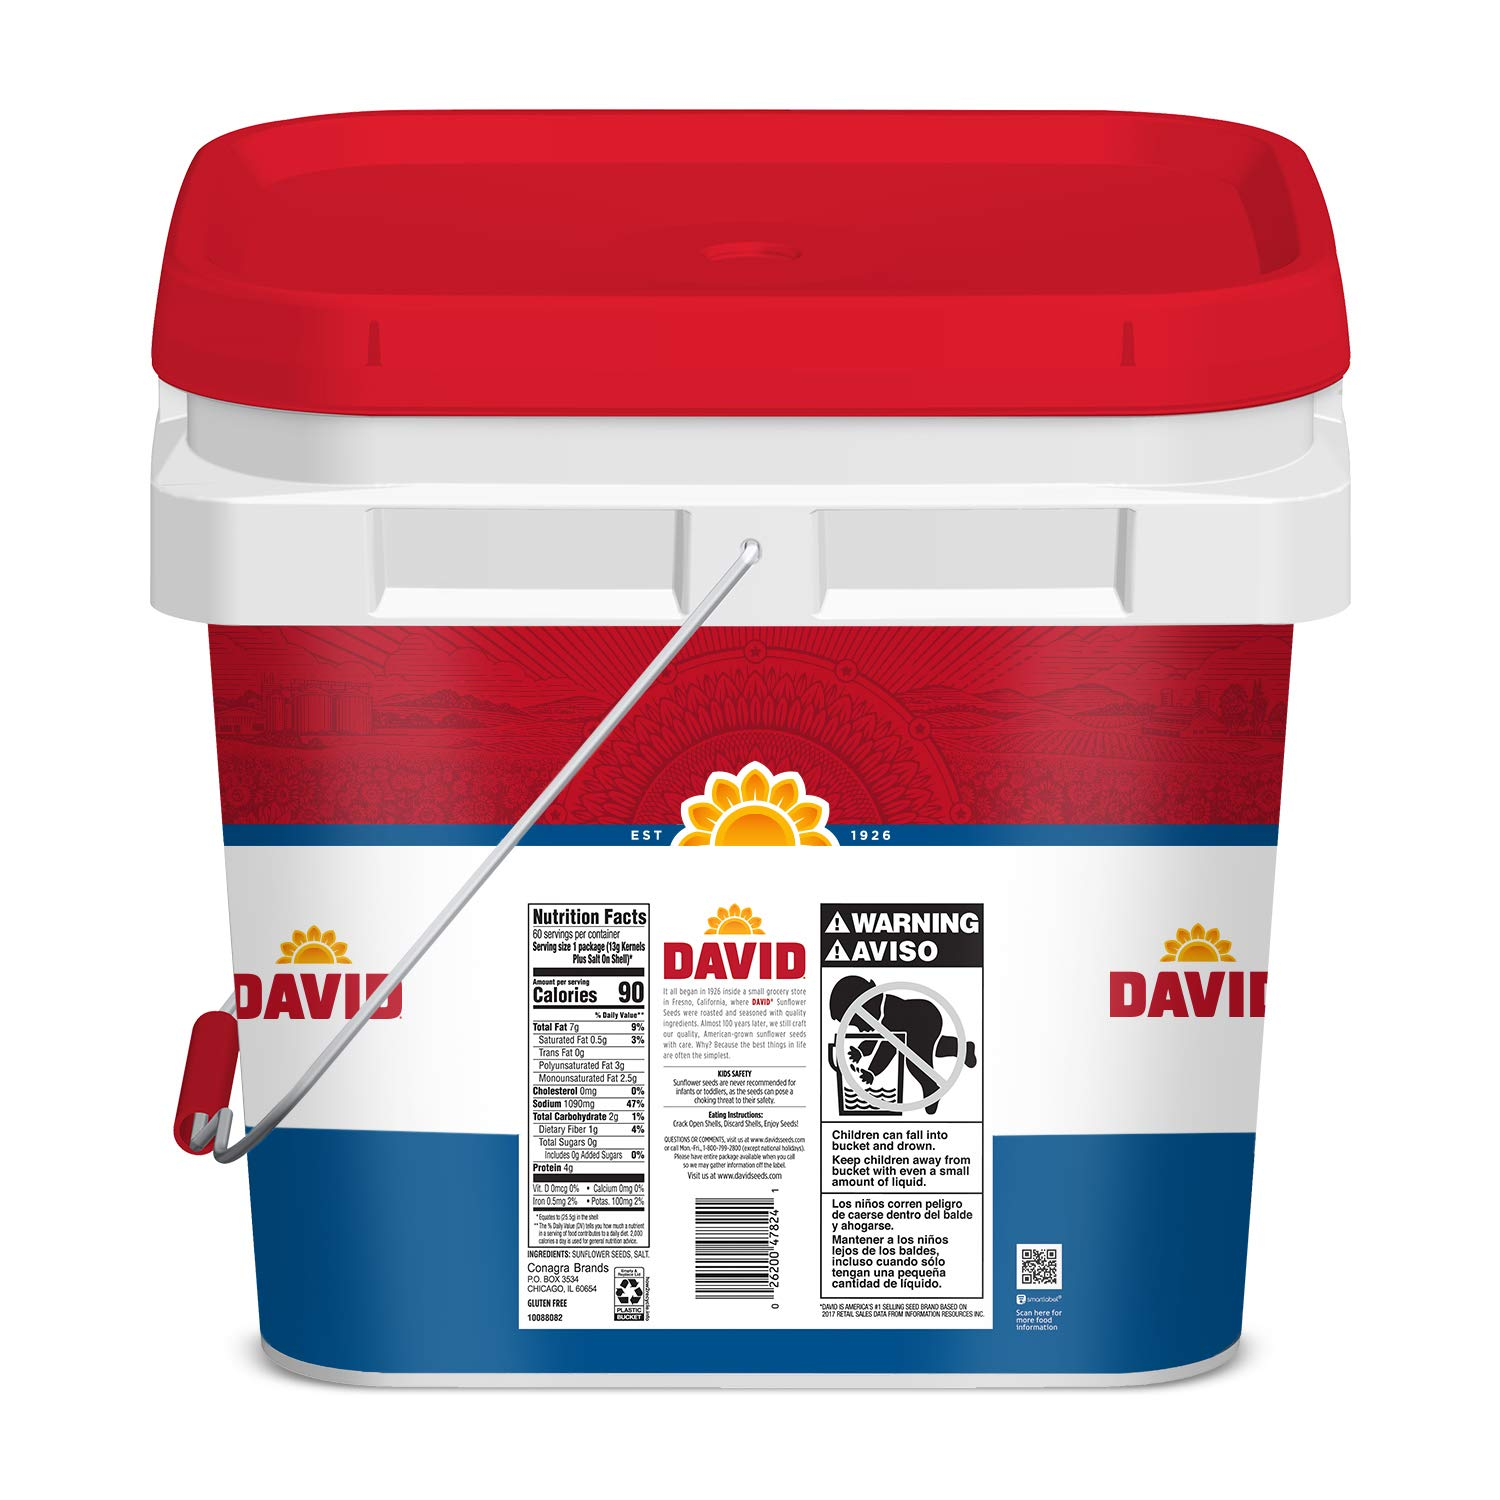 David Seeds Original Sunflower Bucket, 3.37 Pound by DAVID Seeds (Image #10)